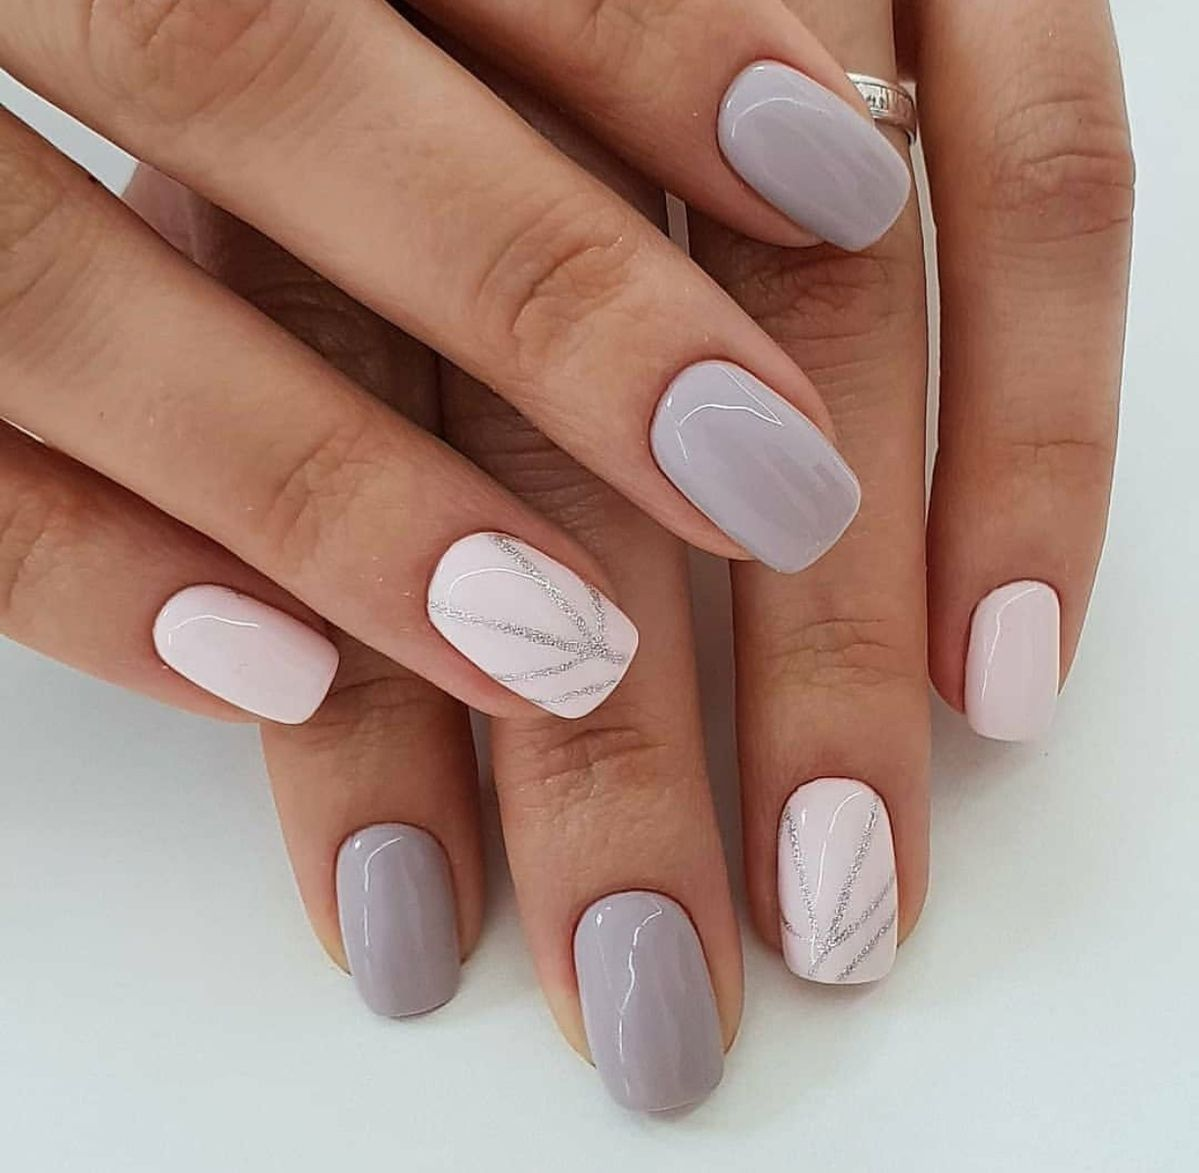 70 Simple Nail Design Ideas That Are Actually Easy Short Acrylic Nails Designs Short Acrylic Nails Nail Designs